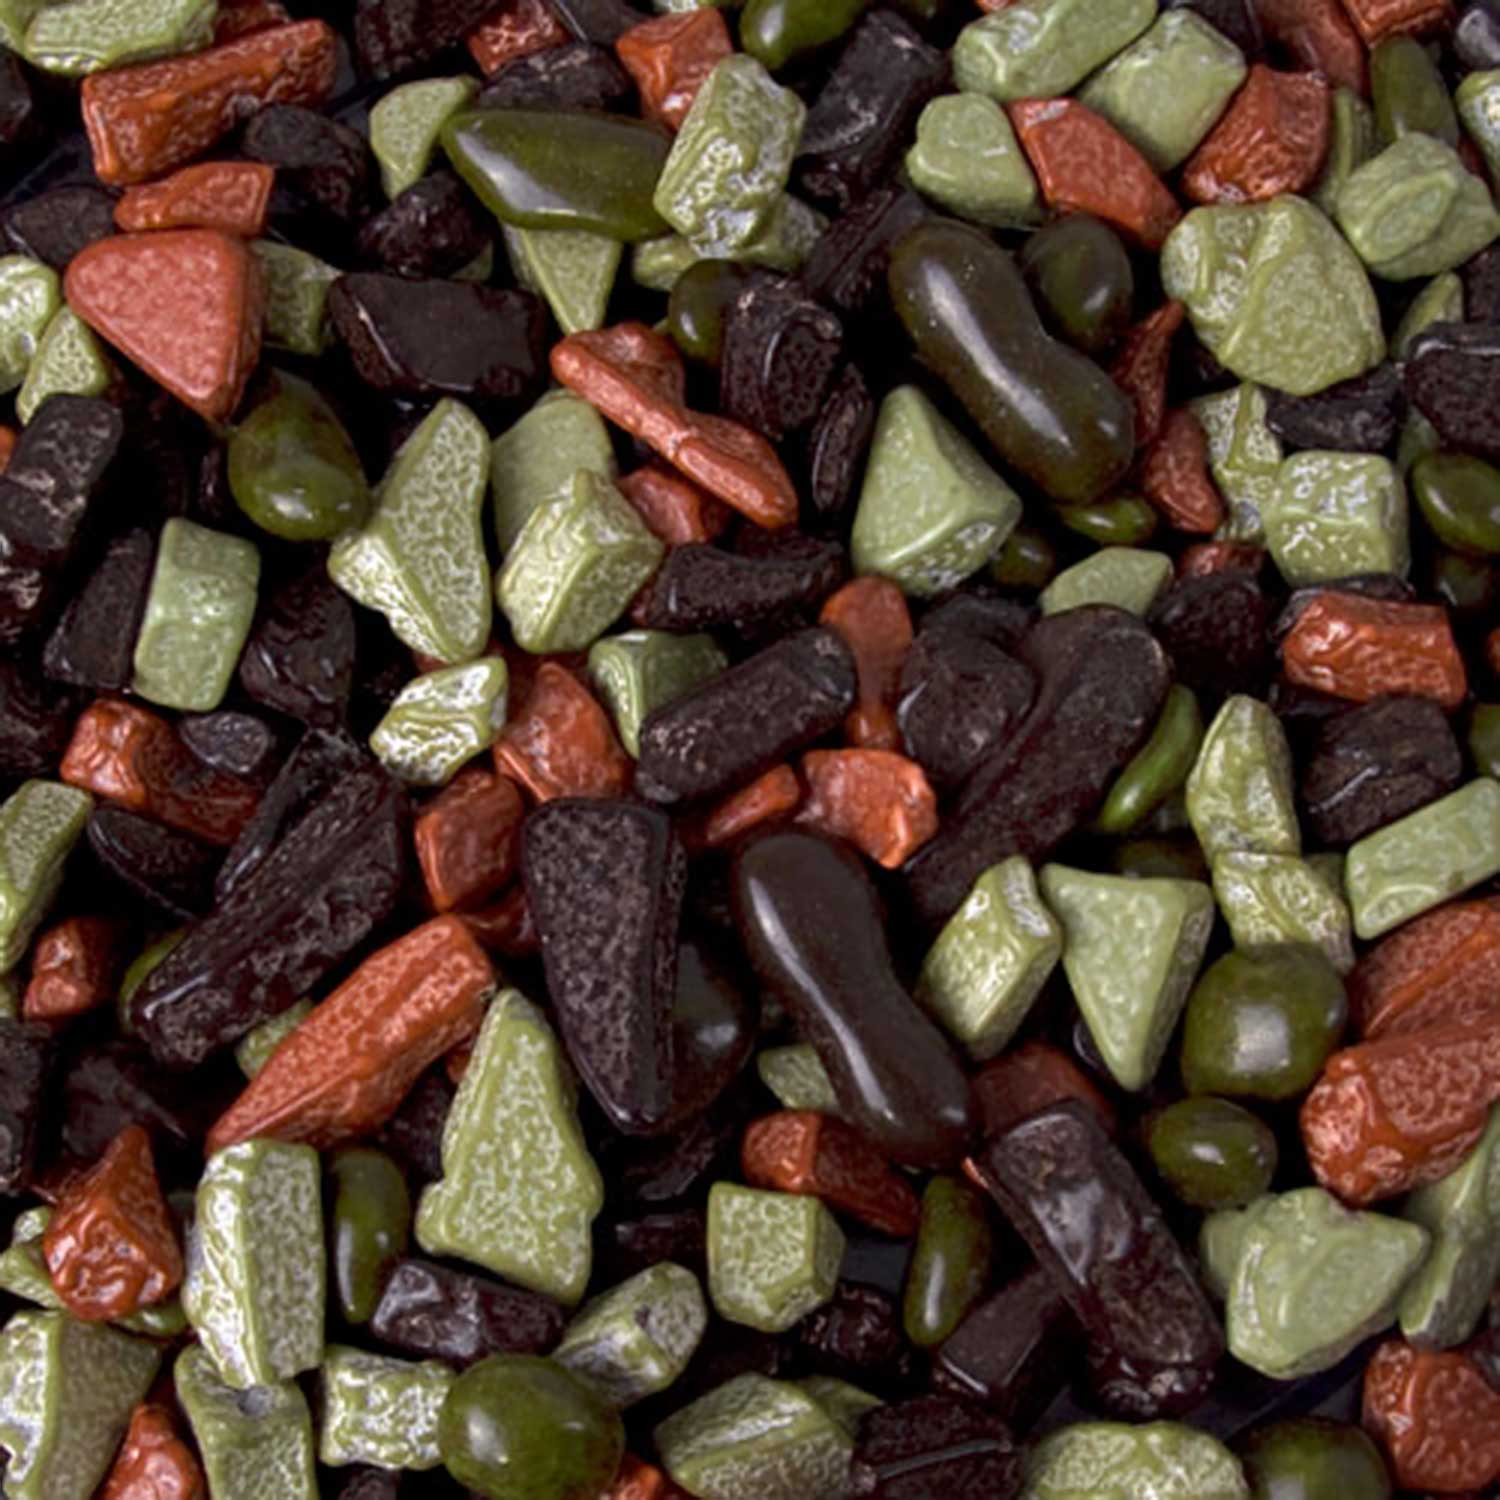 ChocoRocks - Chocolate Camo Rocks